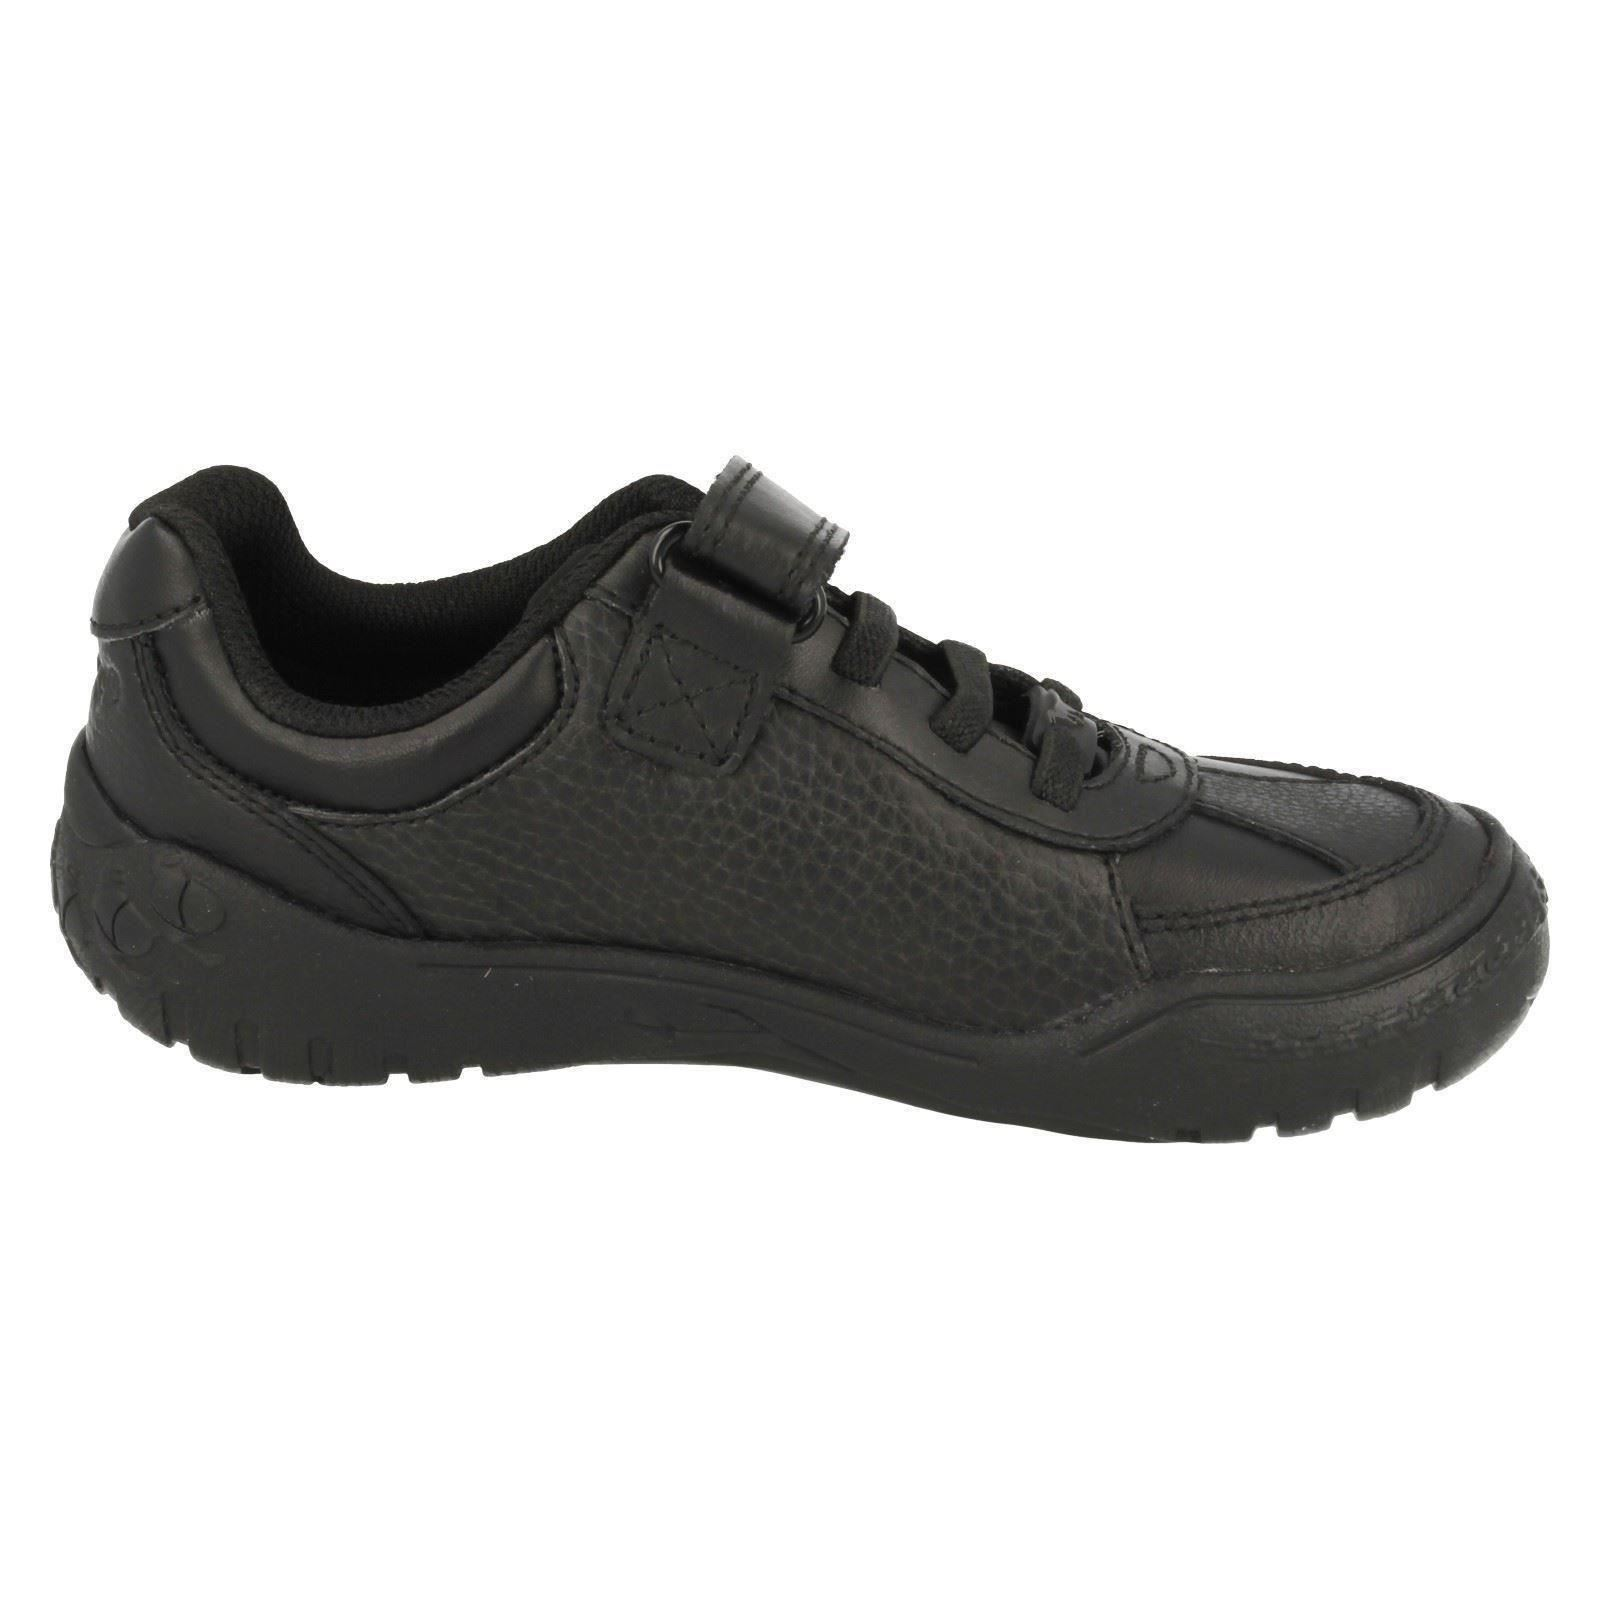 Boys Clarks School Shoes Stomp Rex